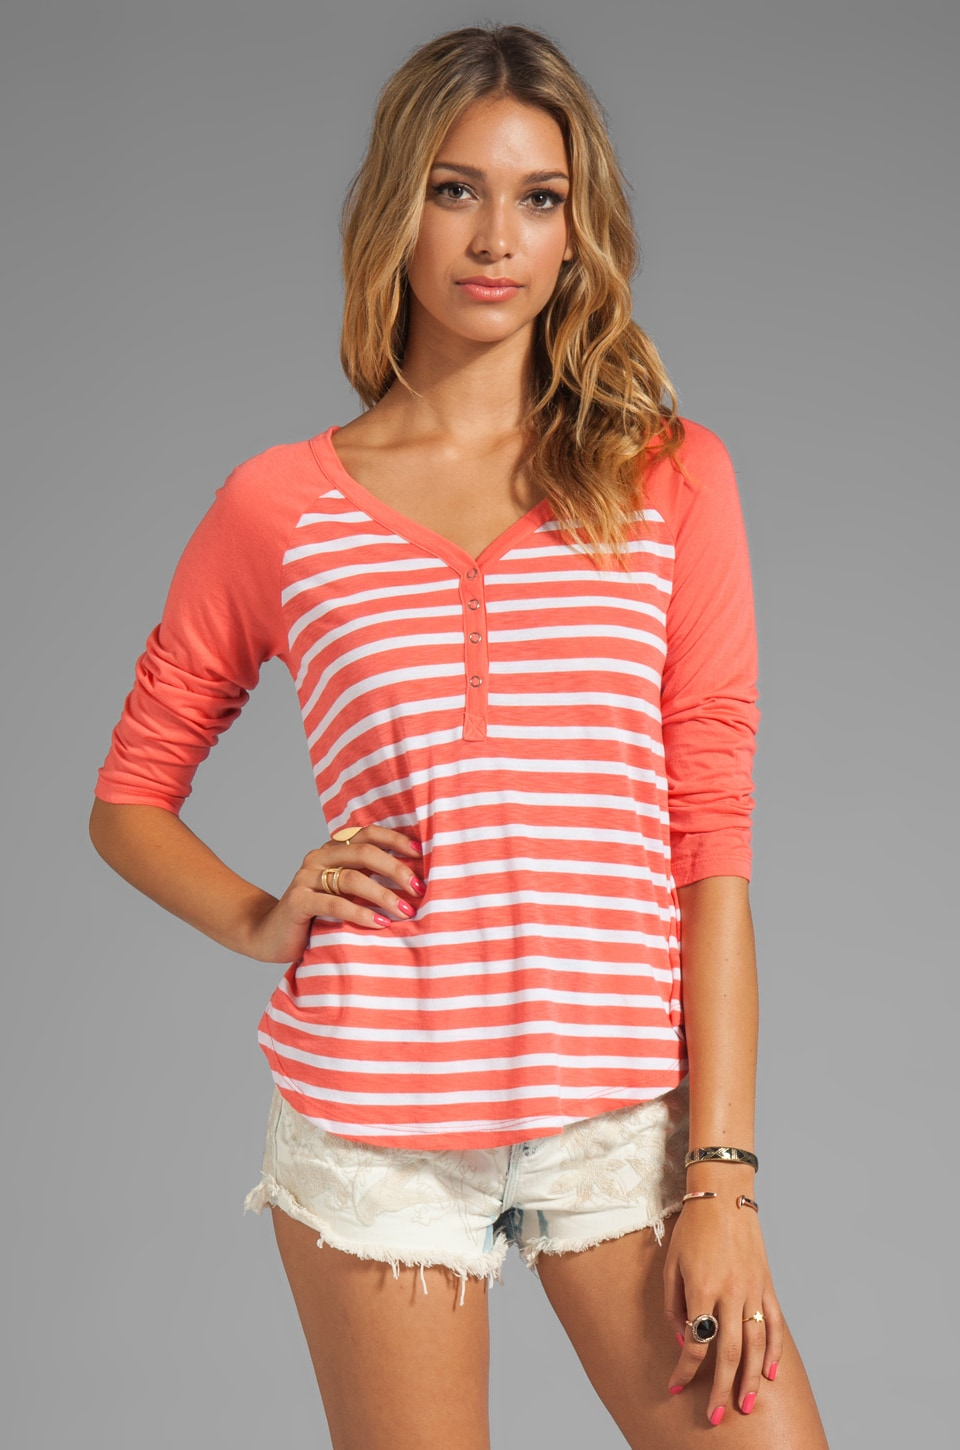 Splendid Mediterranean Stripe Henley Top in Hot Coral